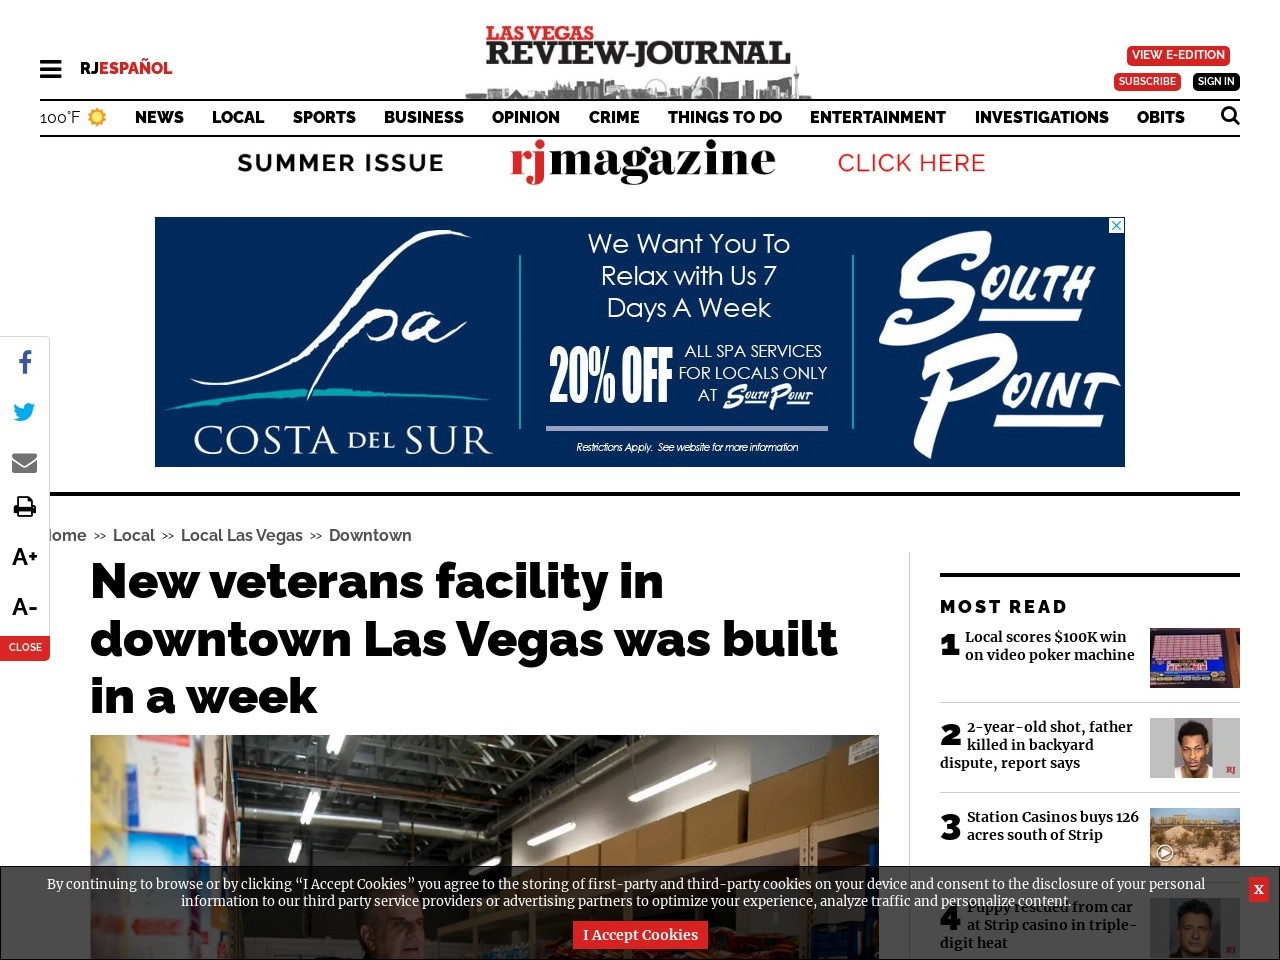 New veterans facility in downtown Las Vegas was built in a week